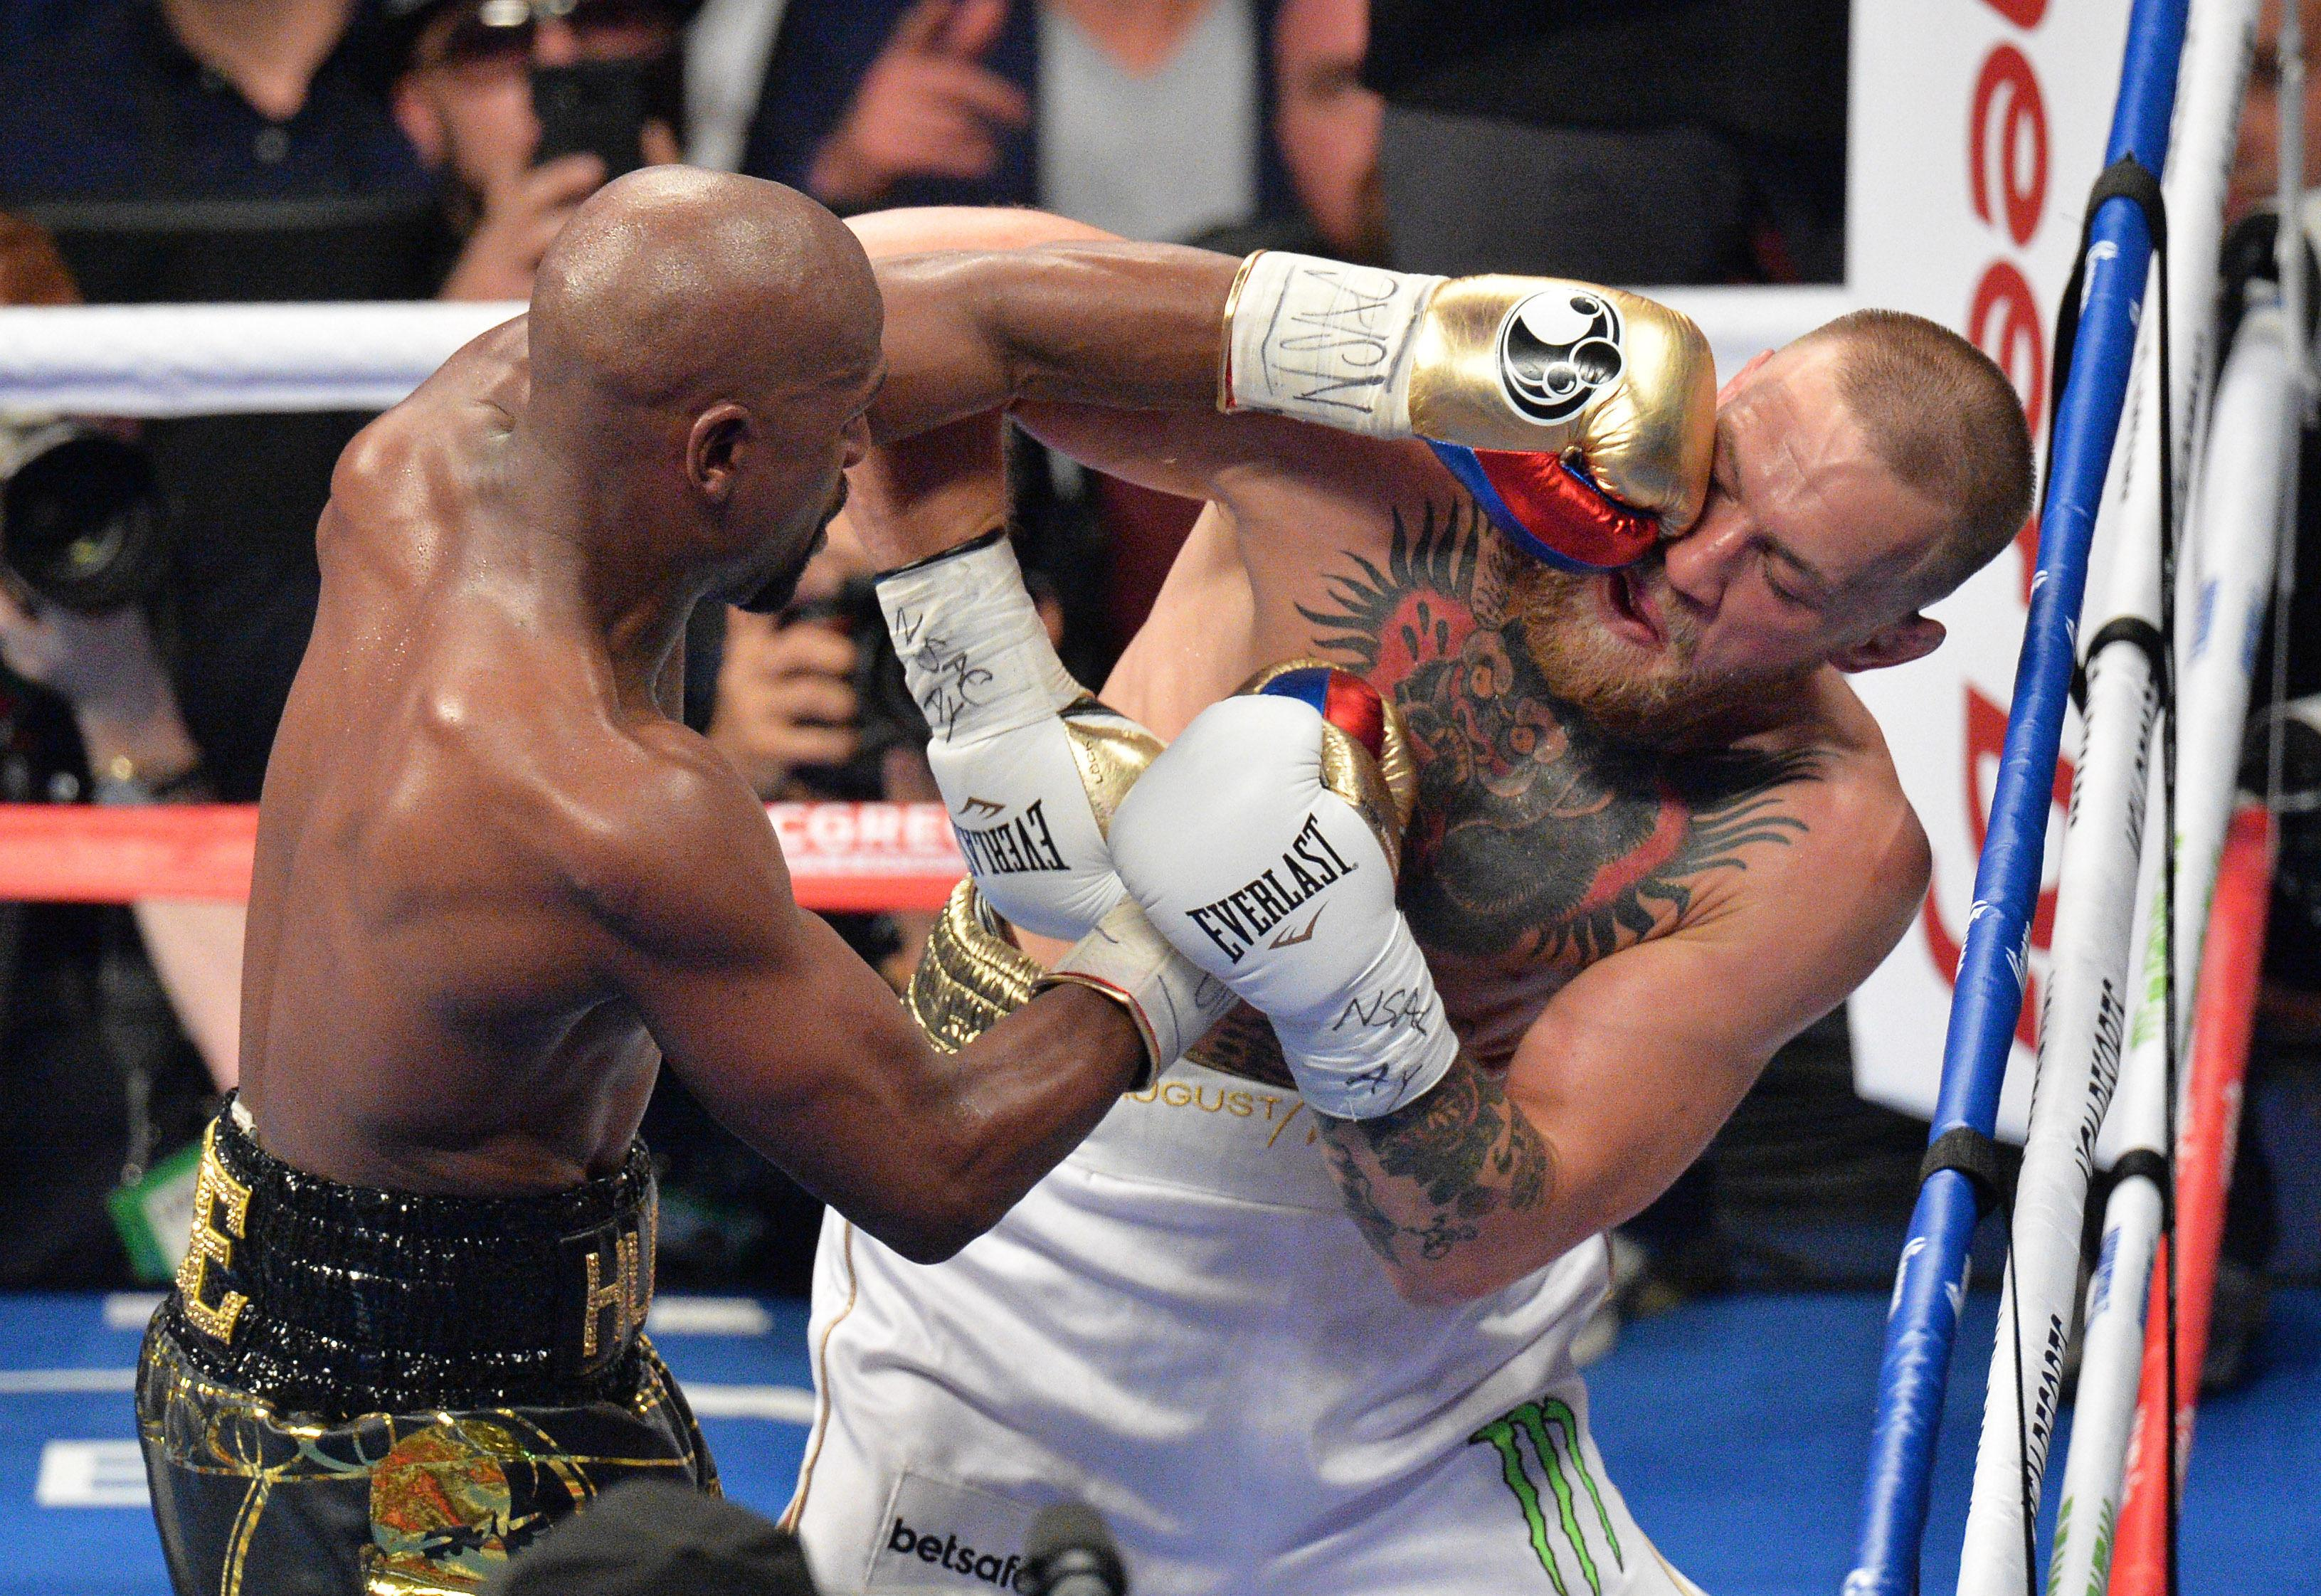 Last summer Floyd Mayweather preserved his unbeaten boxing record by beating Conor McGregor with a tenth-round KO